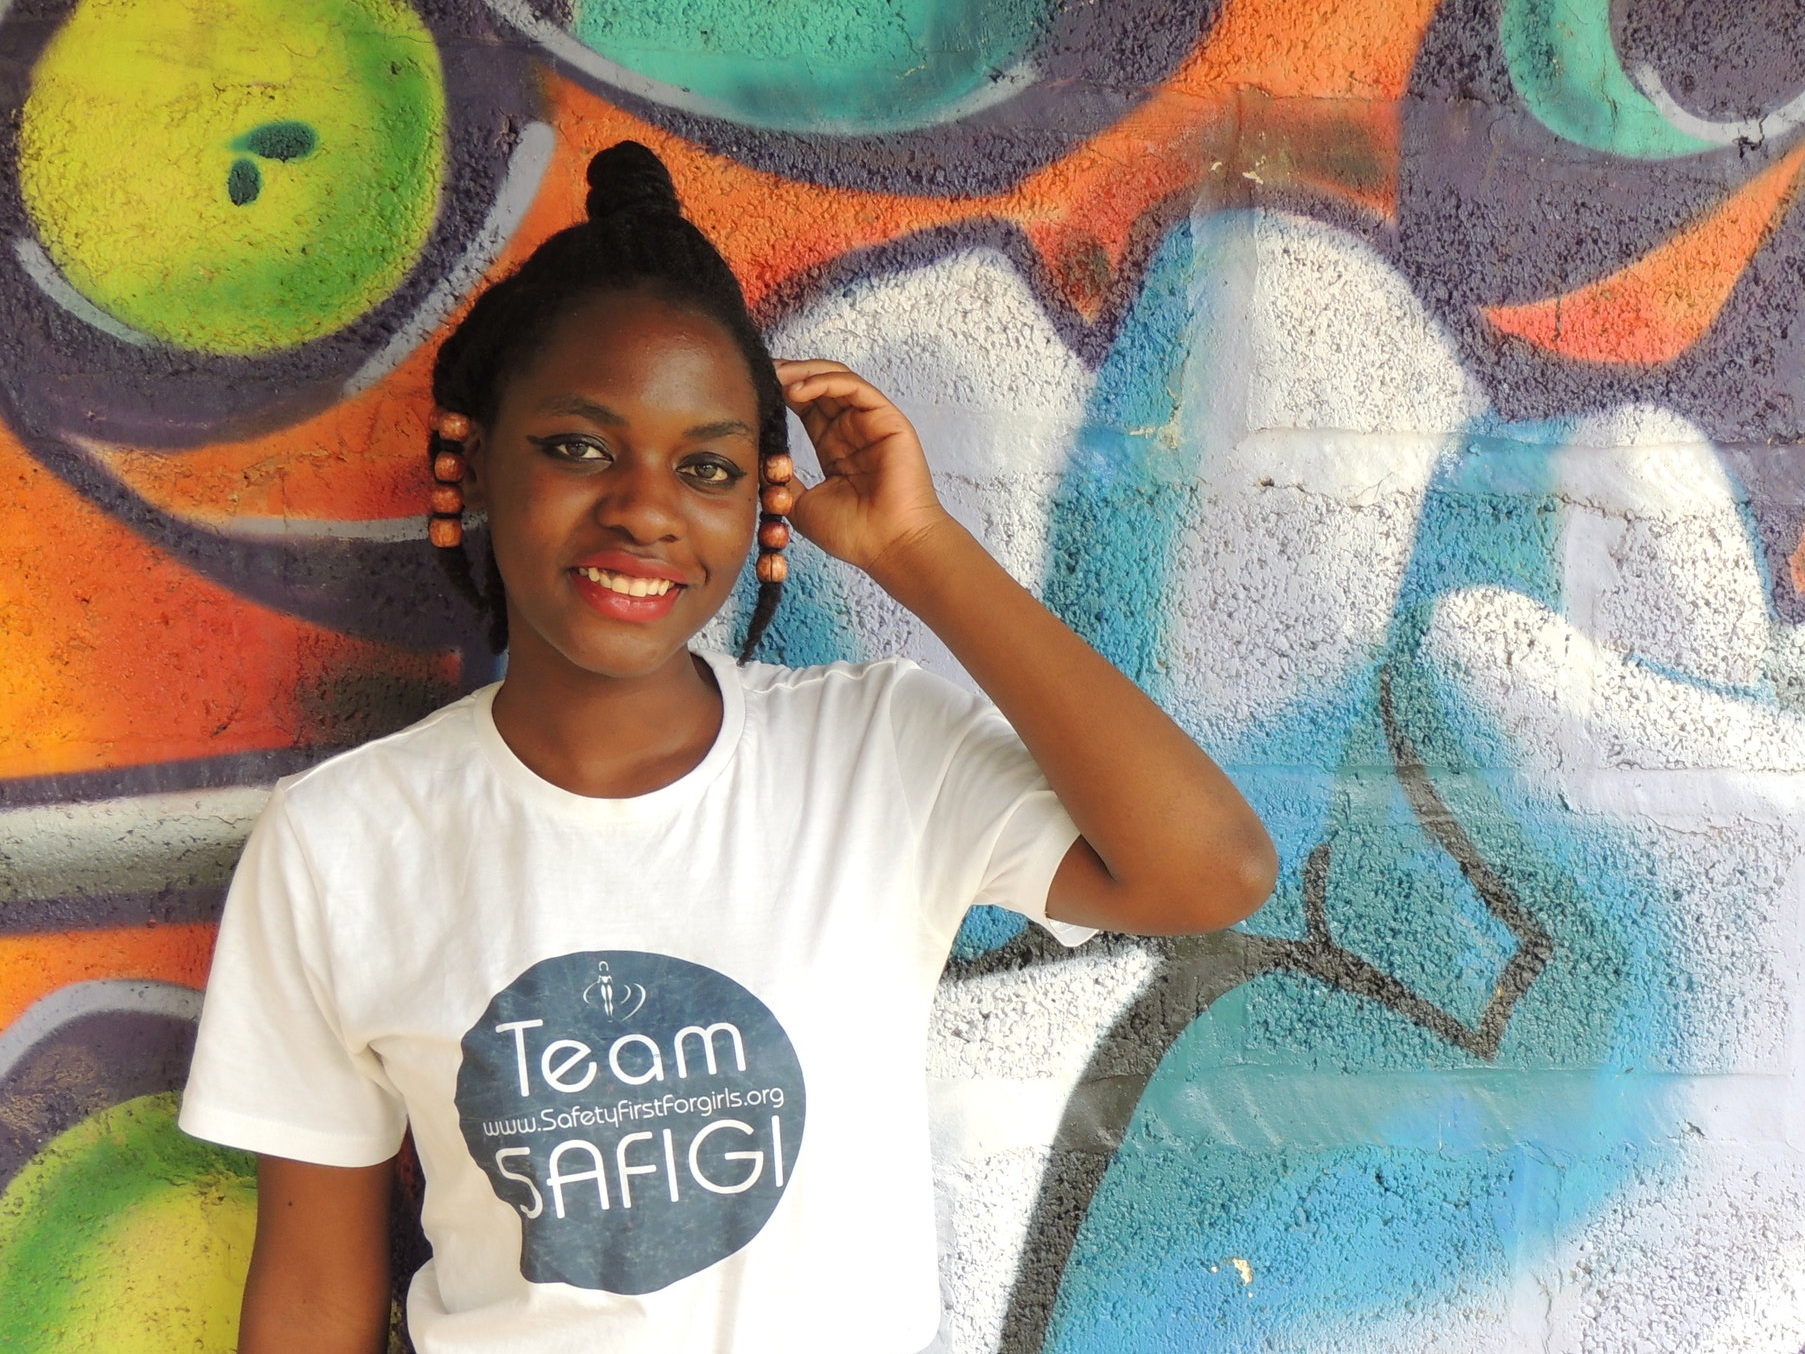 Esther Mwema - Founder, Safety First for Girls Outreach Foundation (SAFIGI) Nationality: CongoleseLiving in: Lusaka, ZambiaFields of work: gender, human rights, media/journalism, internet governance, safety